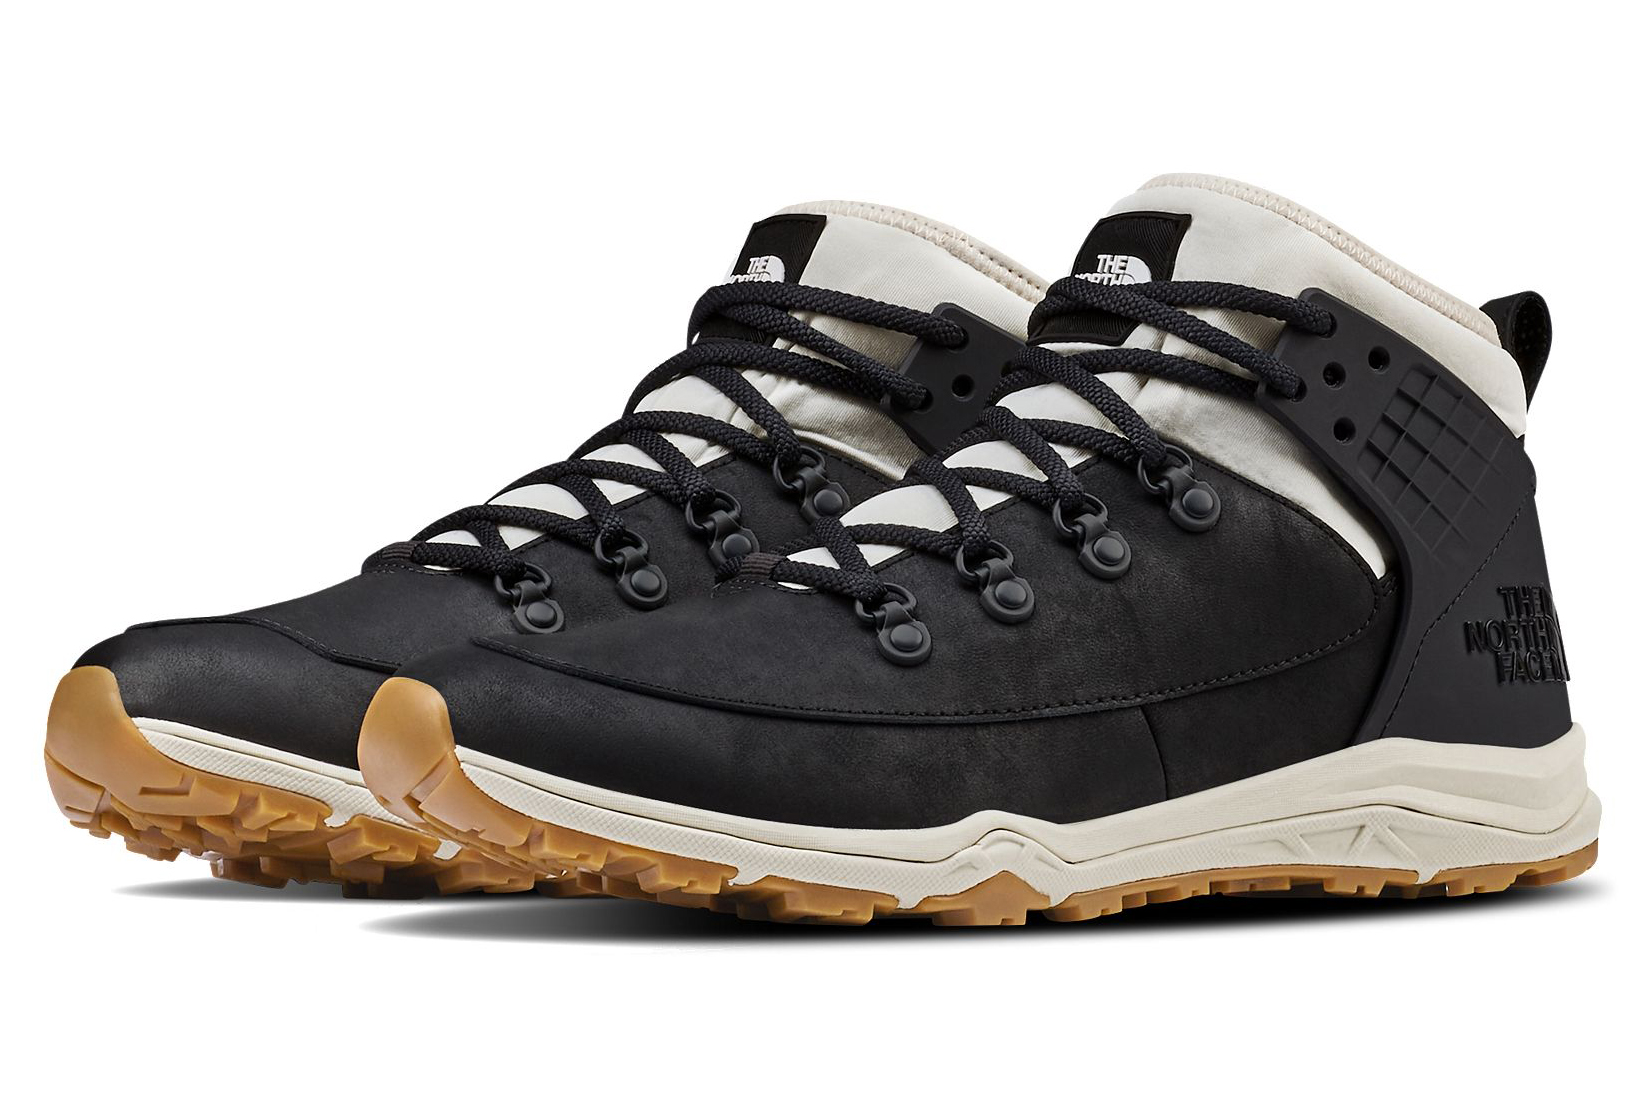 92083afd5411 Lifestyle Outdoor  10 Boots That Look Good On Trail and In Town ...